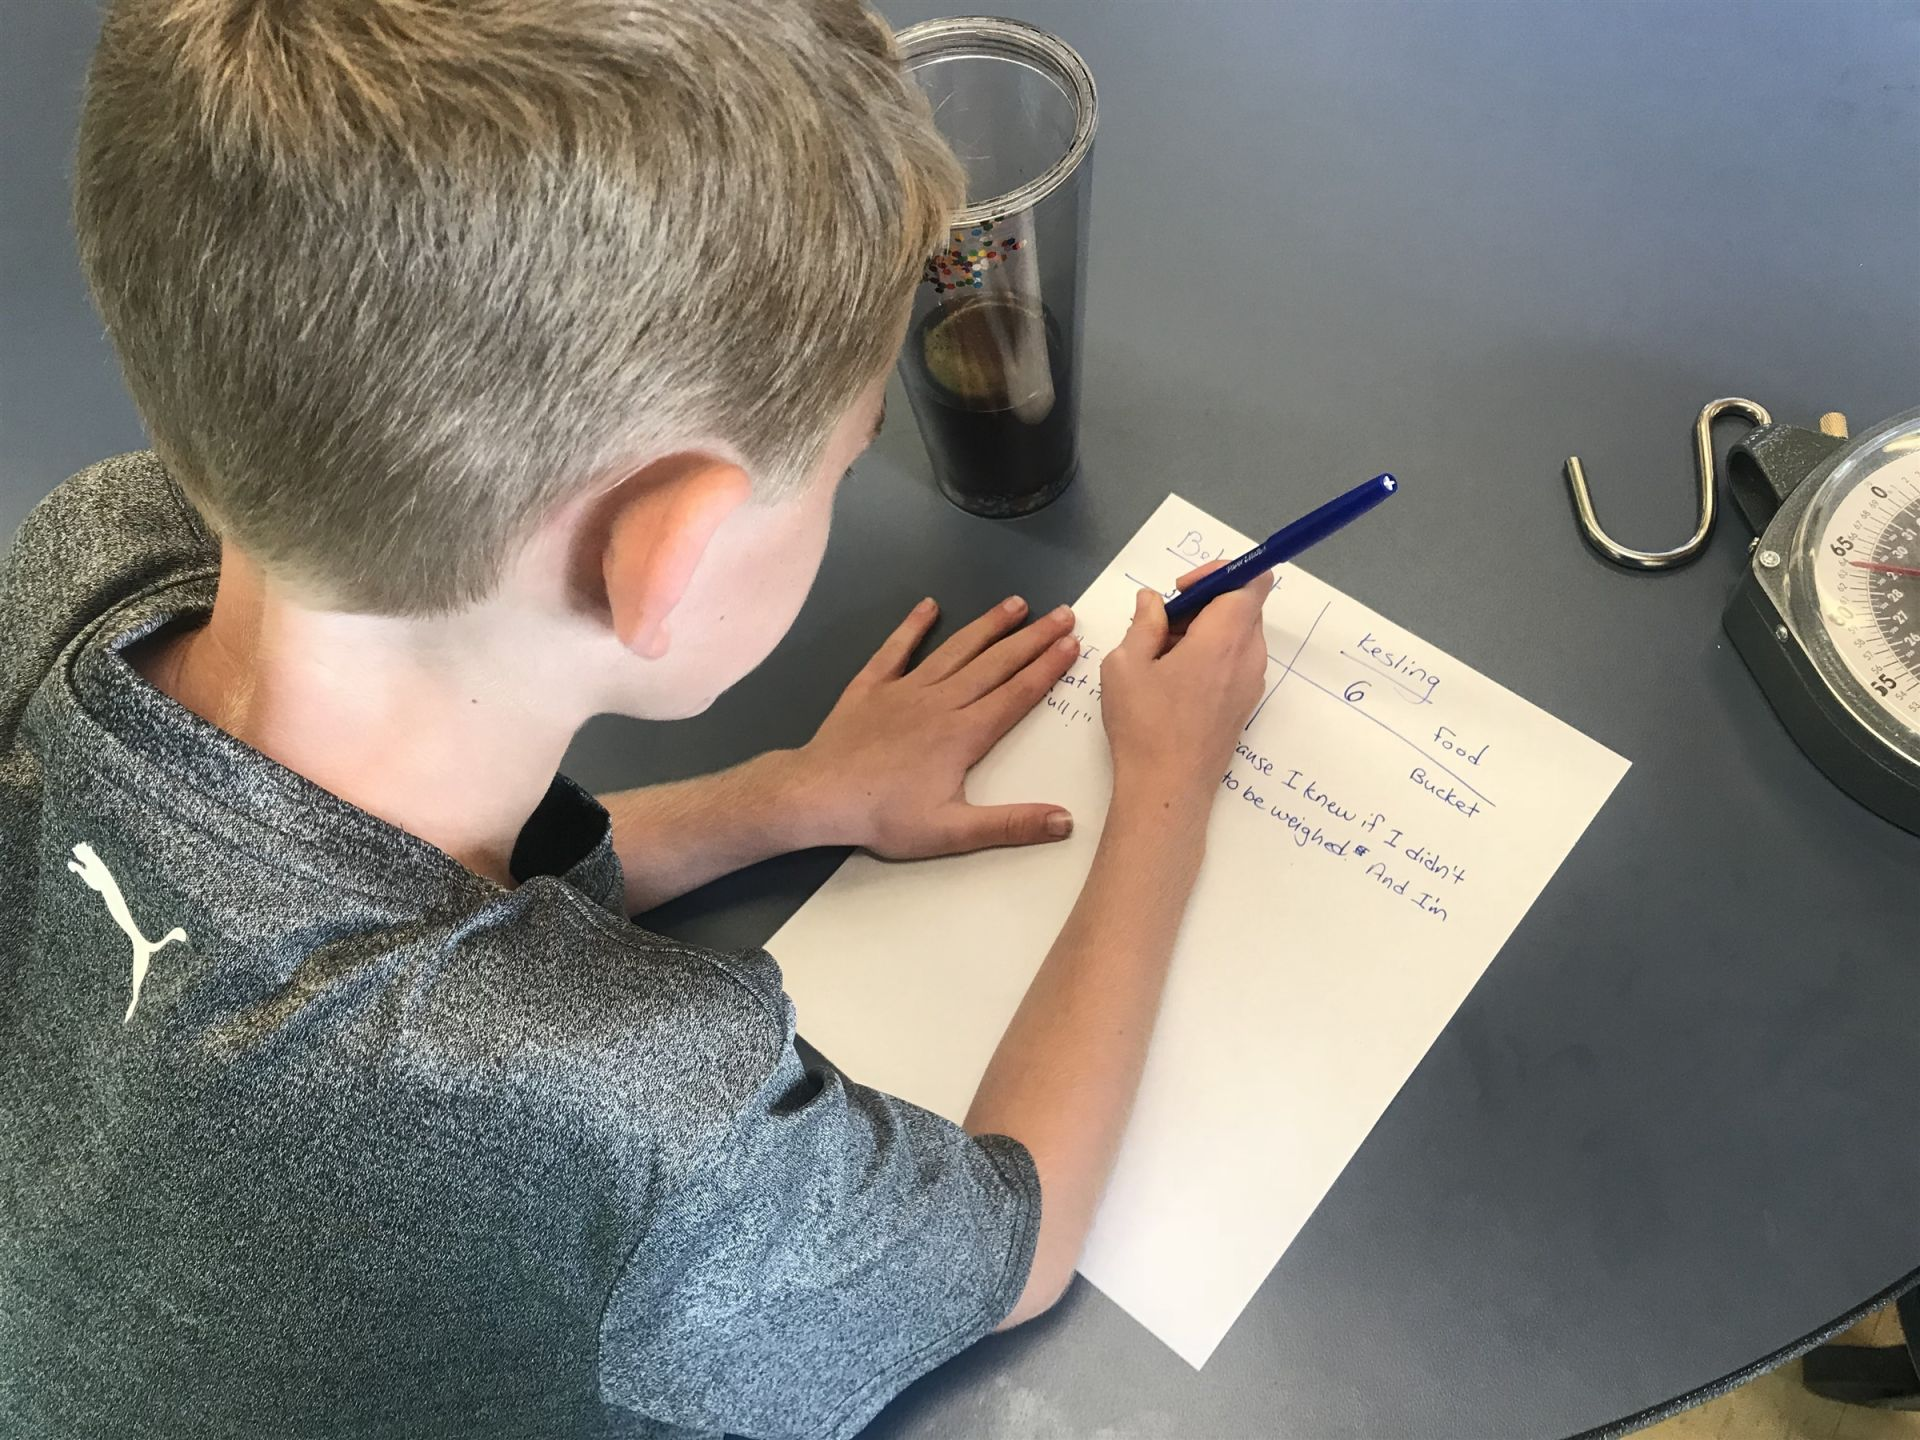 Literacy; Writing; Science: Serious work doesn't only happen in the classroom.  When your project work involves using real tools to quantify food waste, you might as well take the opportunity to record your predictions and thoughts right at the cafeteria table! In this photo, a second grader jots down notes to help him remember what to share back with his classmates when finishing weighing the food waste bucket that day.